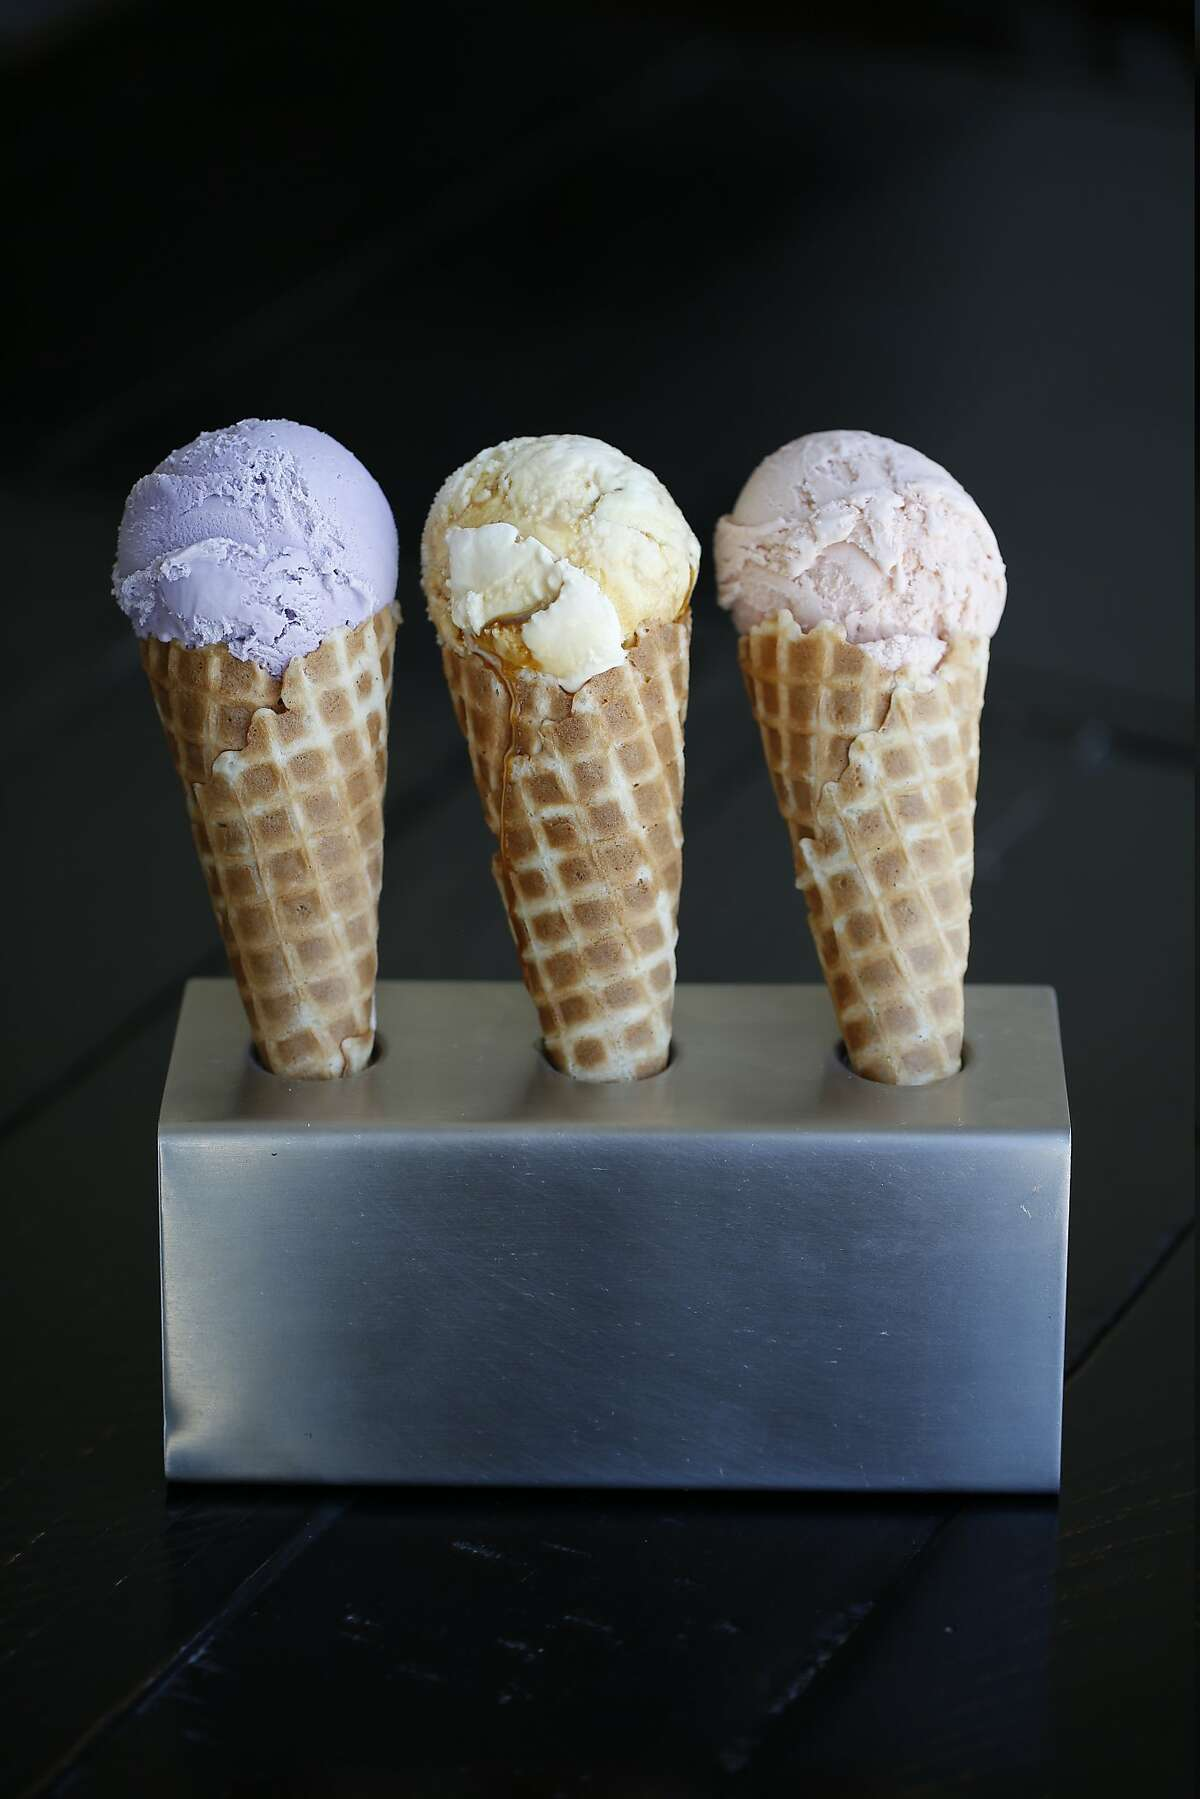 Left to right, Ube (made from purple yams), Flan, and Fruity Pebbles Ice Cream is featured at Mr. and Mrs. Miscellaneous on Monday, July 16, 2018 in San Francisco, Calif.